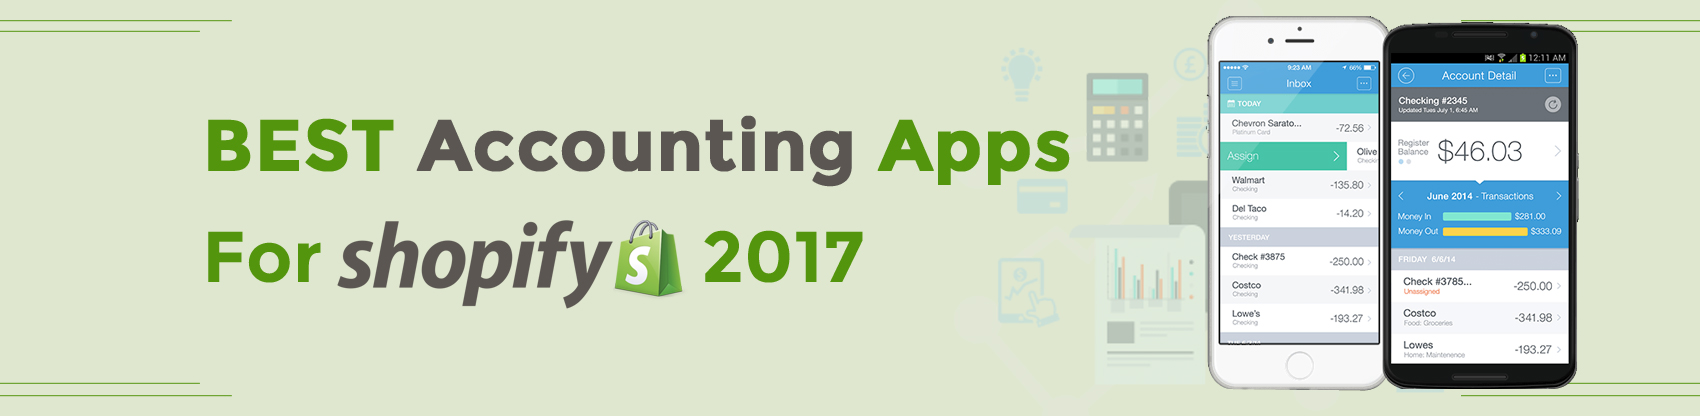 Best Accounting Apps for shopify 2017